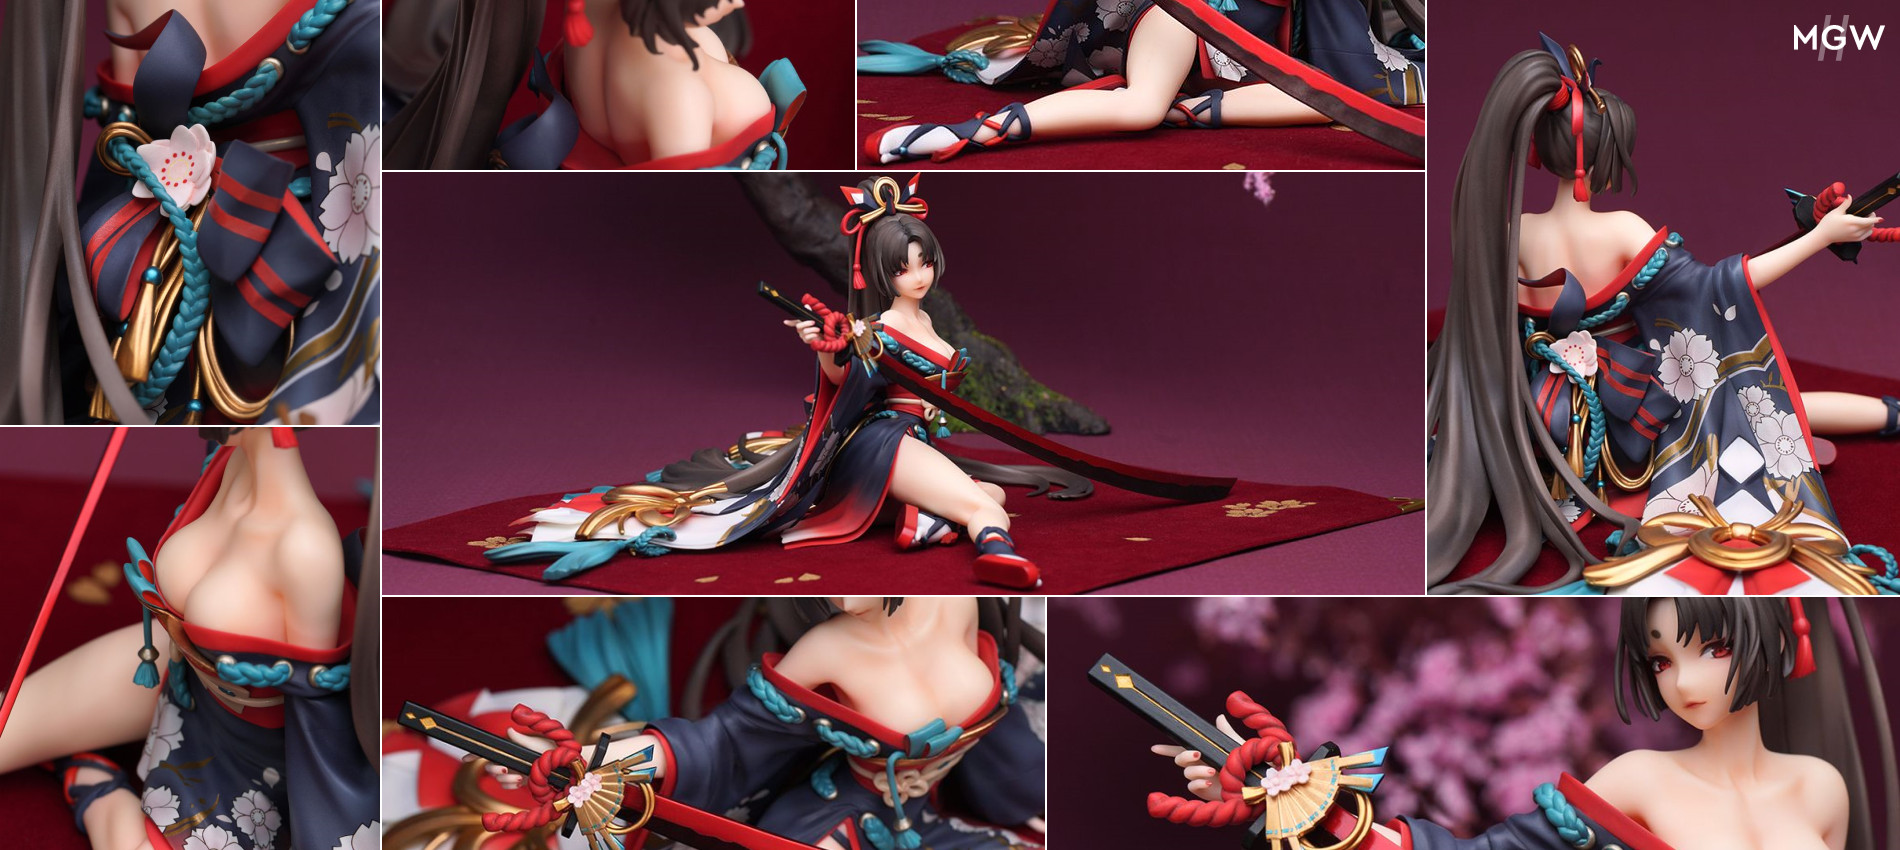 Yoto Hime Scarlet Saber Ver. by Myethos from Onmyoji MyGrailWatch Anime Figure Guide